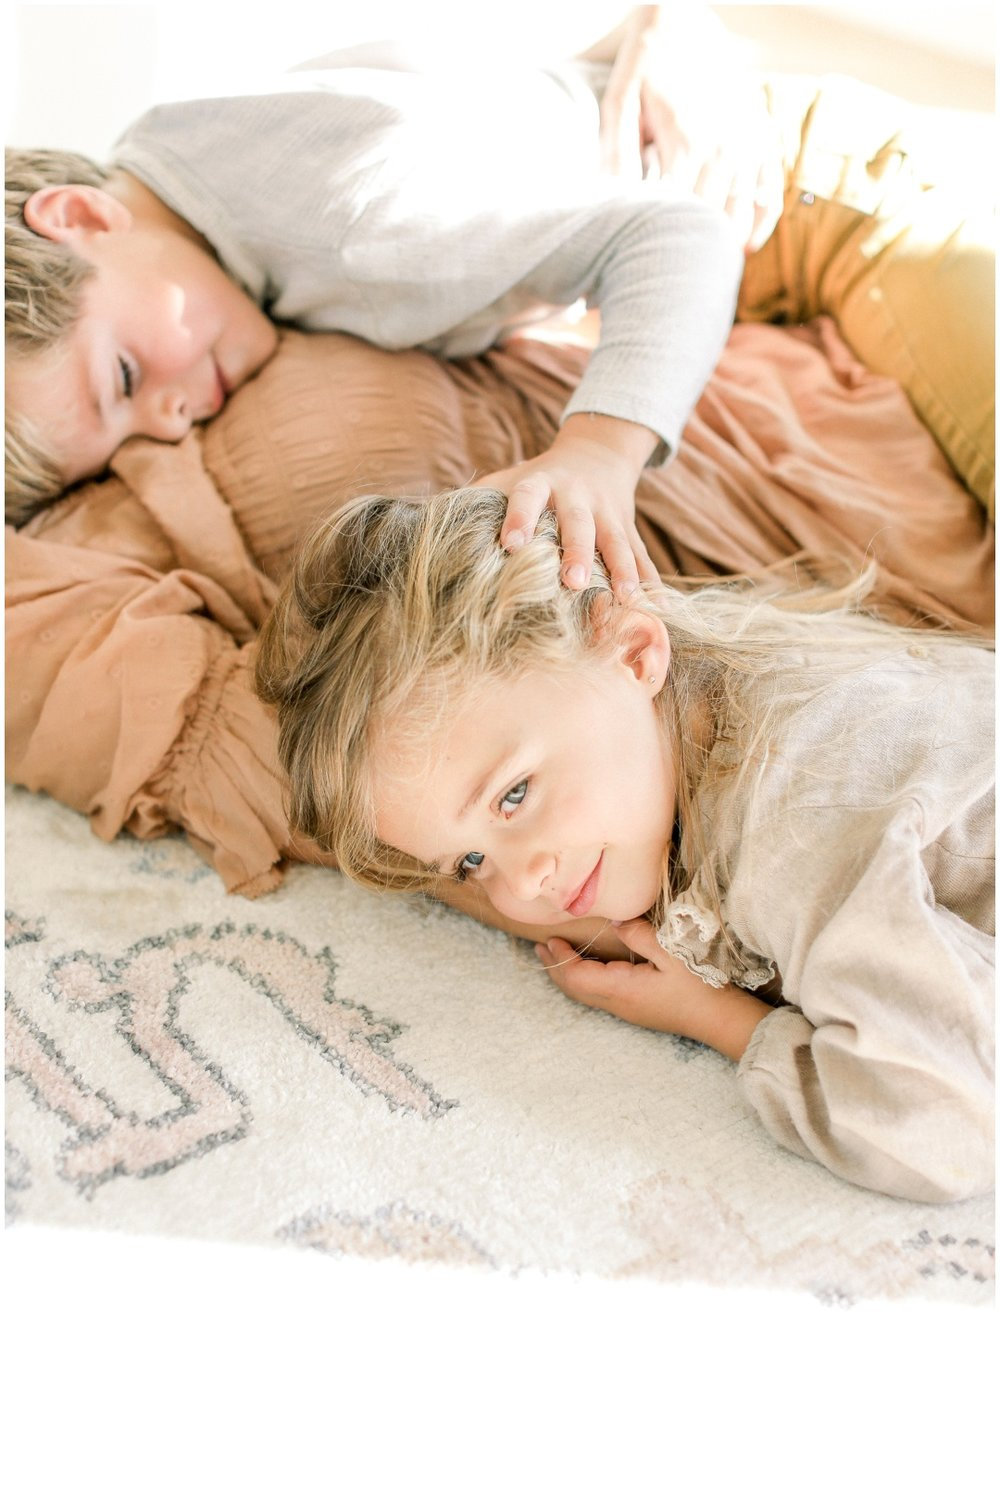 Newport_Beach_Family_Photographer_Newport_Beach_Newborn_Photographer_Orange_County_Family_Photographer_Cori_Kleckner_Photography_Huntington_Beach_San_Clemente_Family_Session_Photography_The_Schwartz_Family_Nicole_Schwartz_2521.jpg